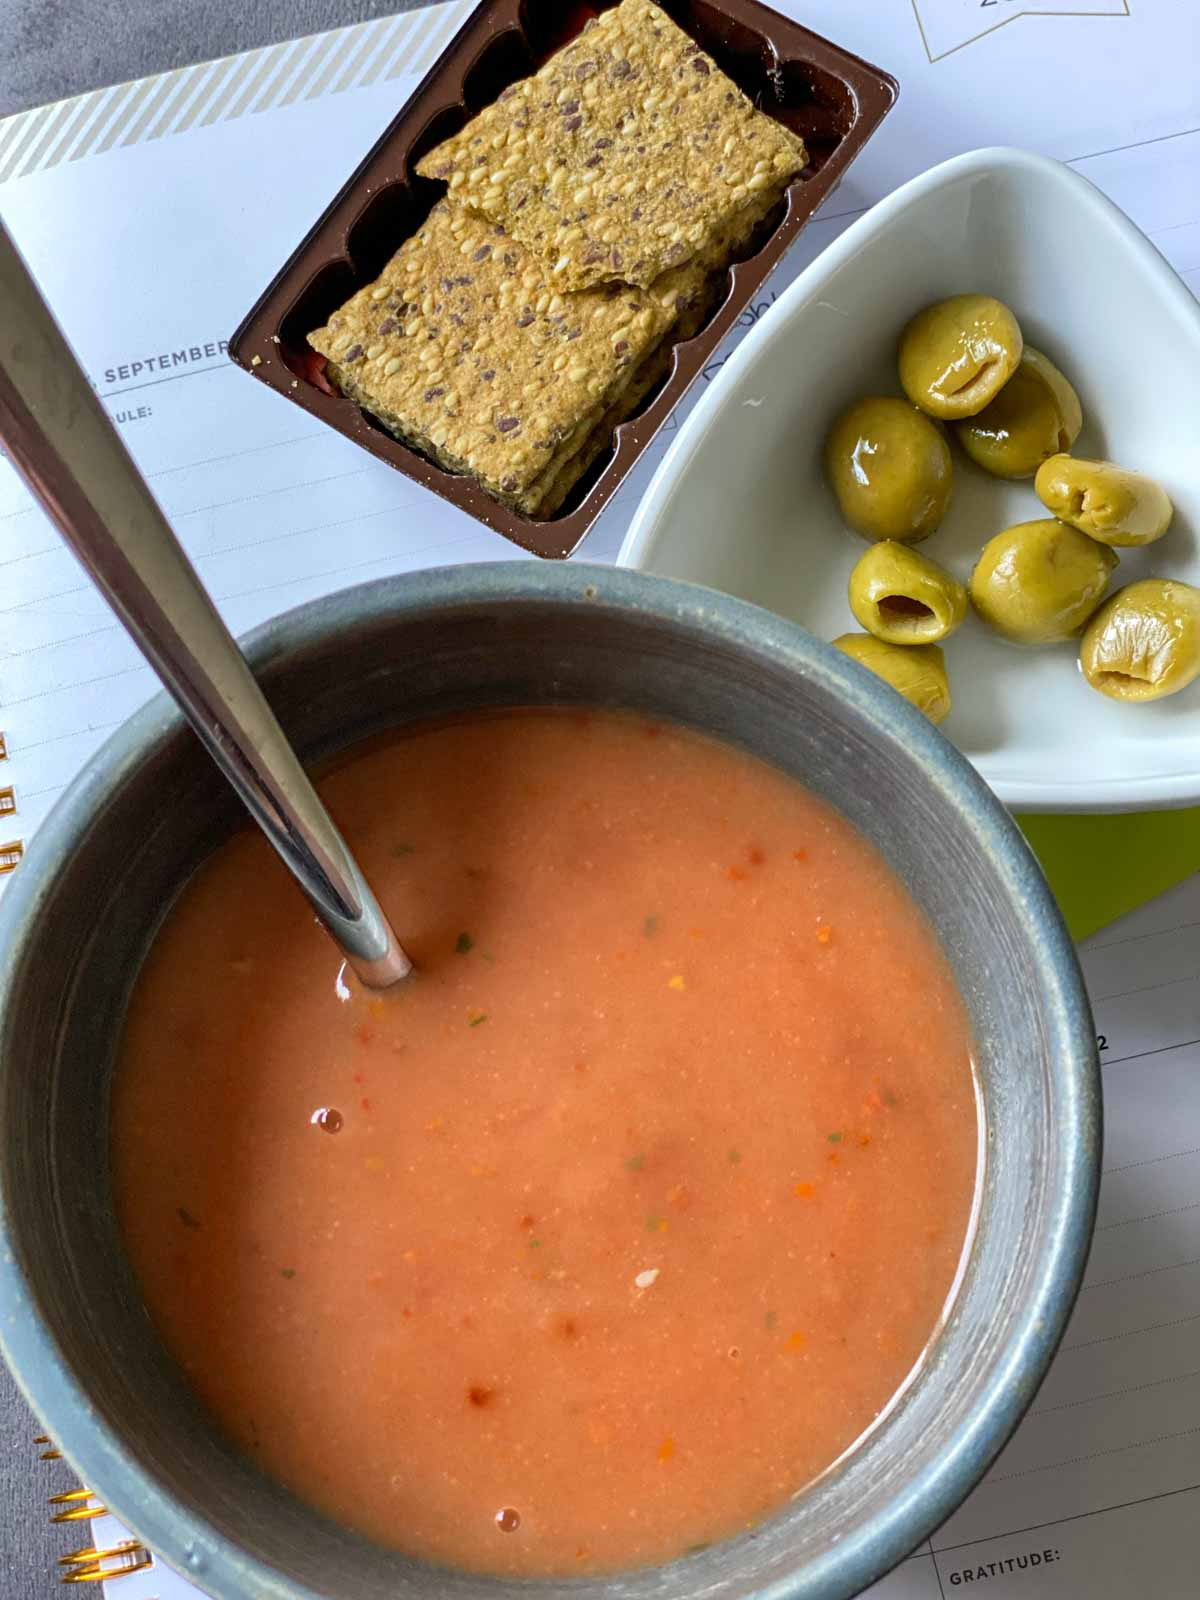 prepared tomato soup, kale crackers and green olives from day 1 of prolon